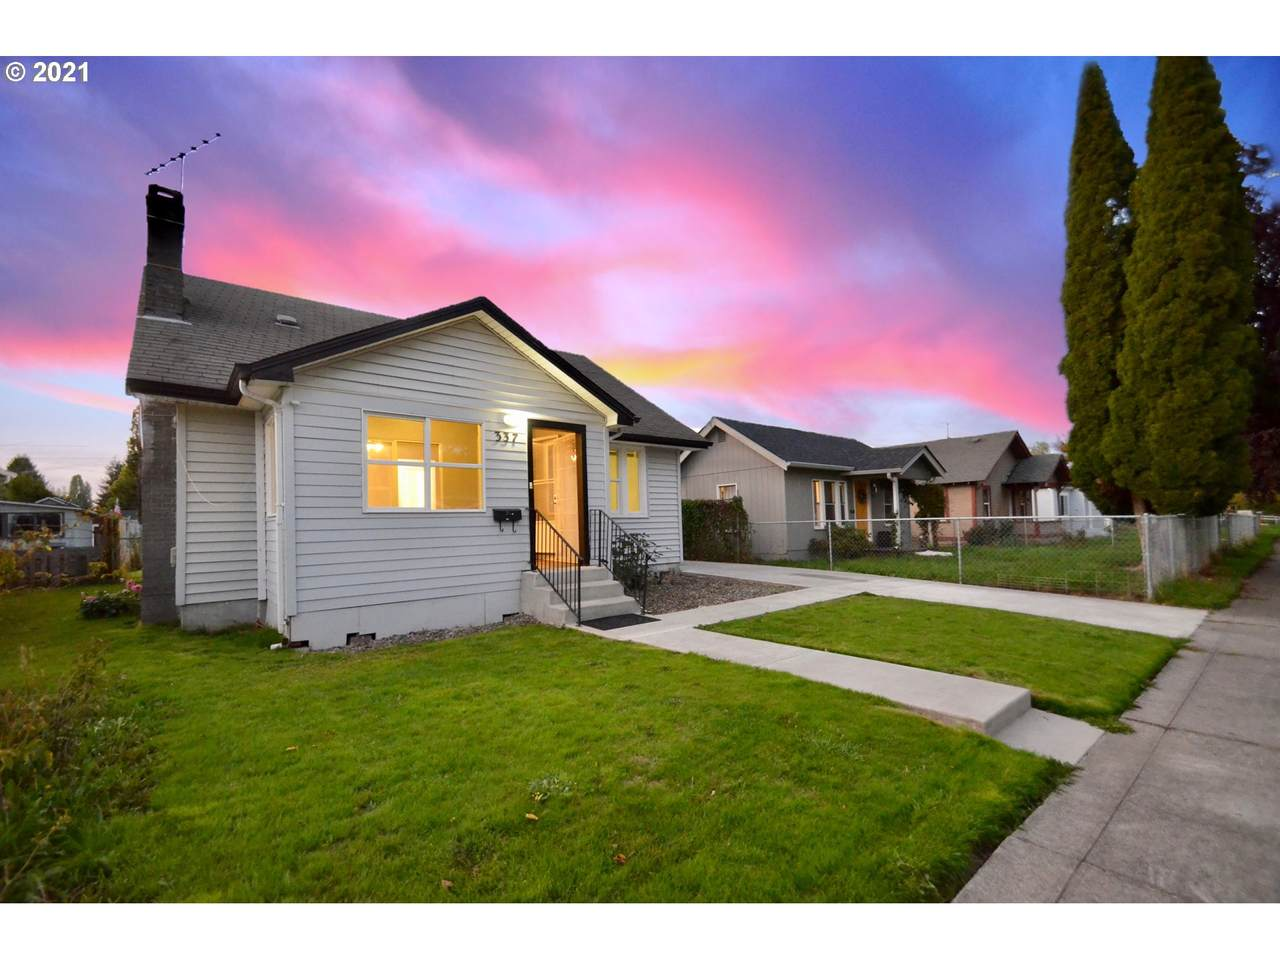 337 20TH Ave - Photo 1